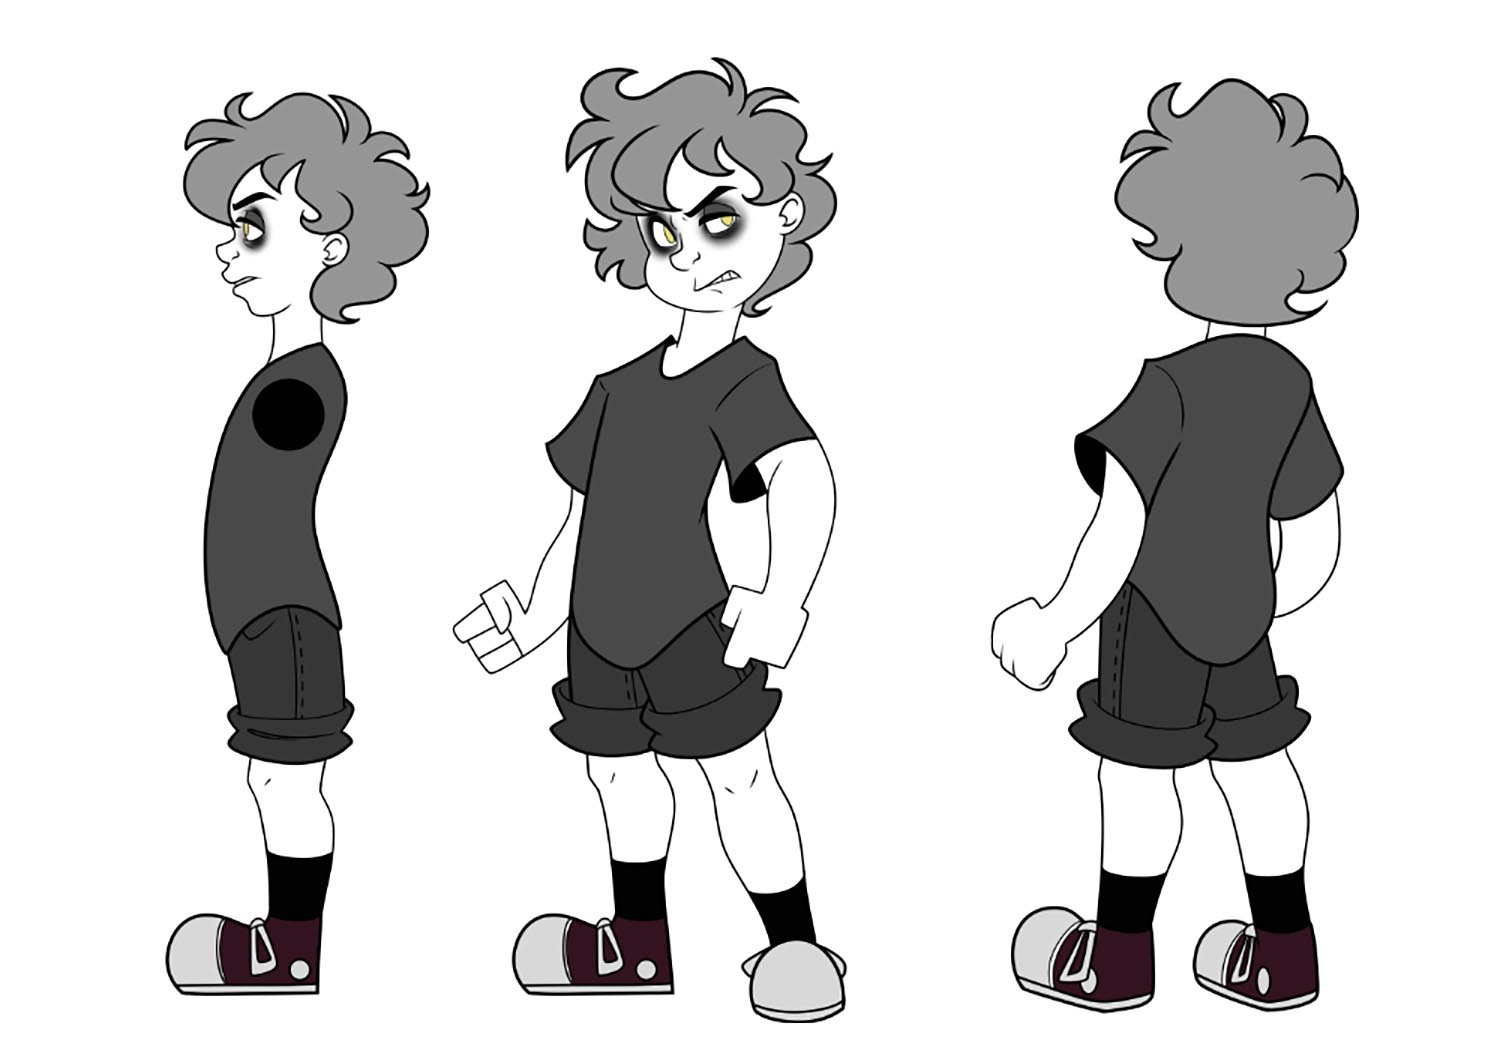 Alex is the main character along with Richard the Rose Parasite.